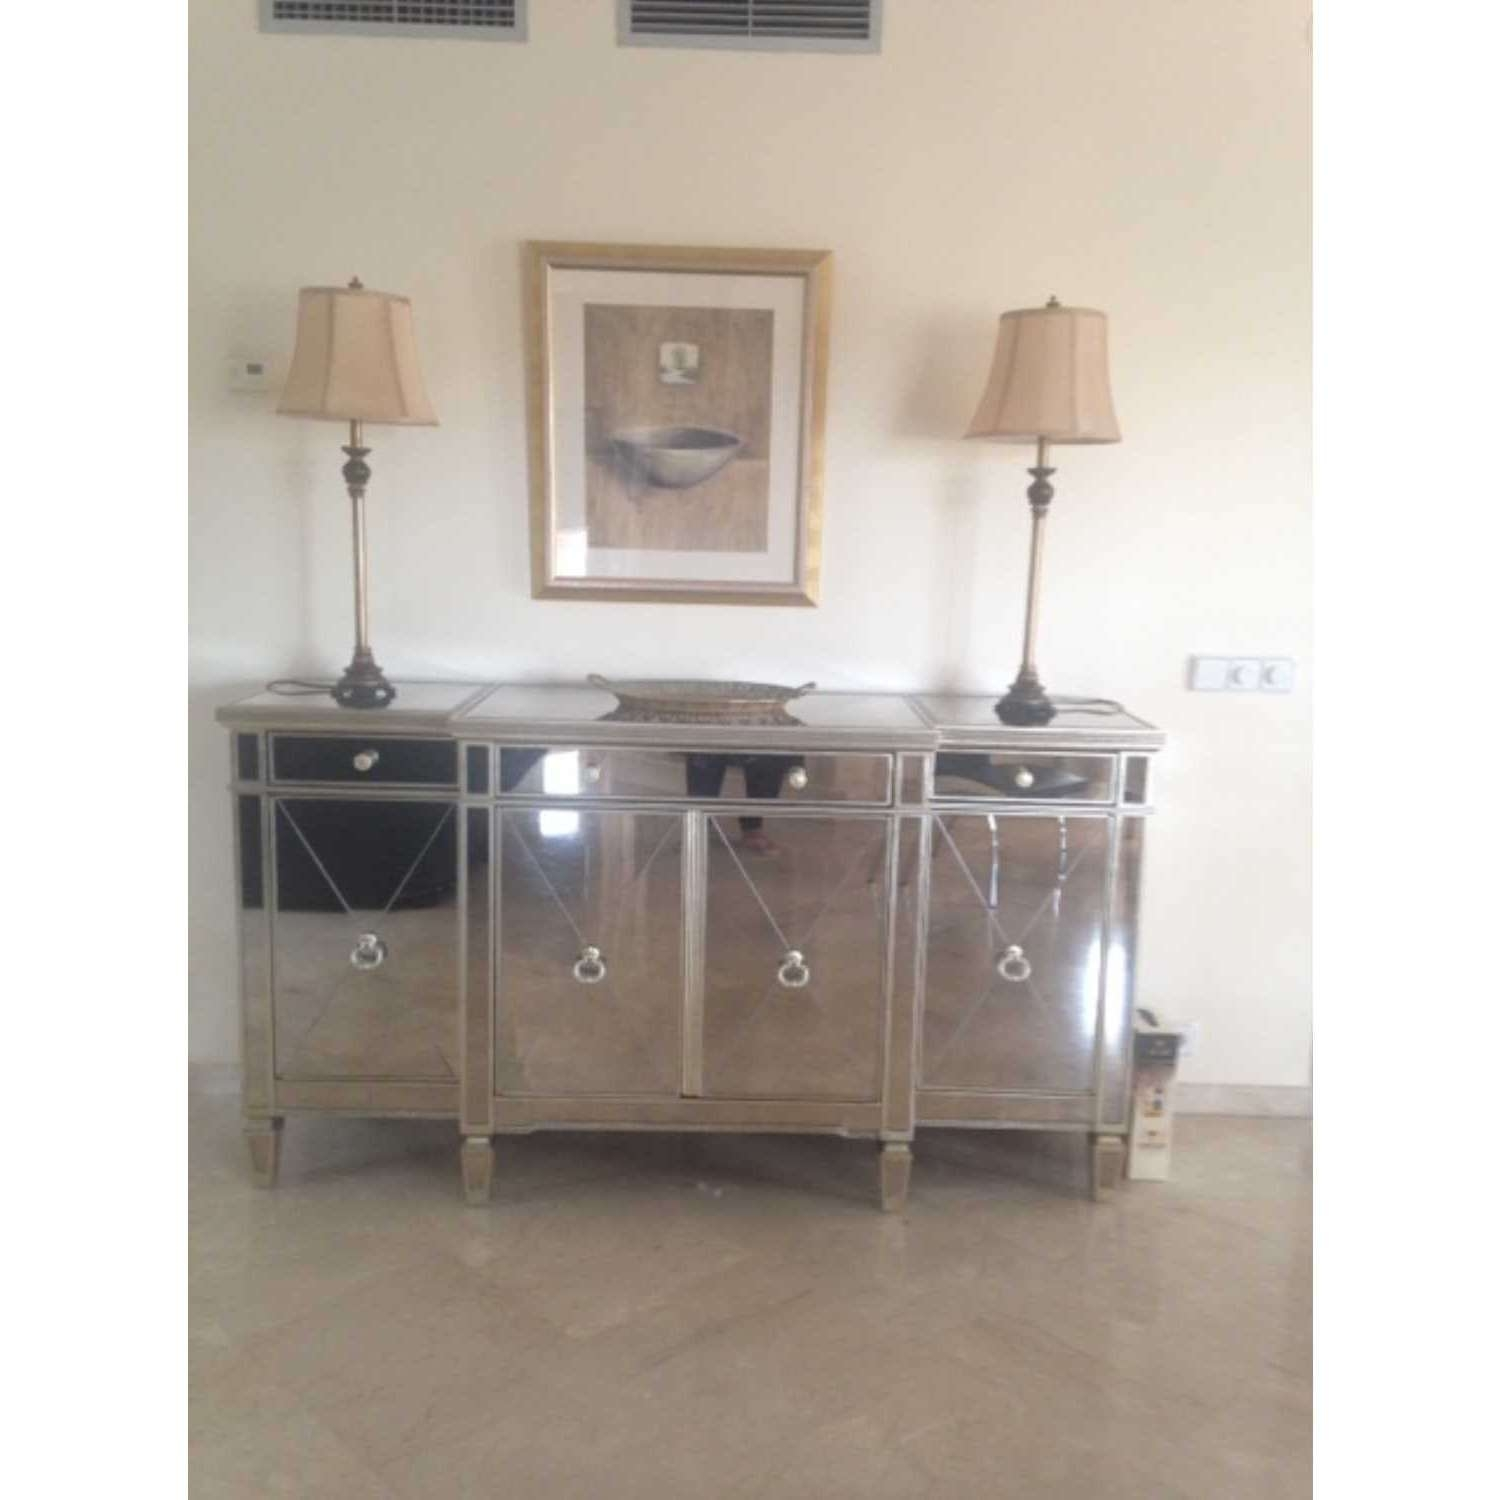 Large Antique Seville Venetian Mirrored Glass Sideboard 4 Door Pertaining To Mirrored Sideboards (View 7 of 20)